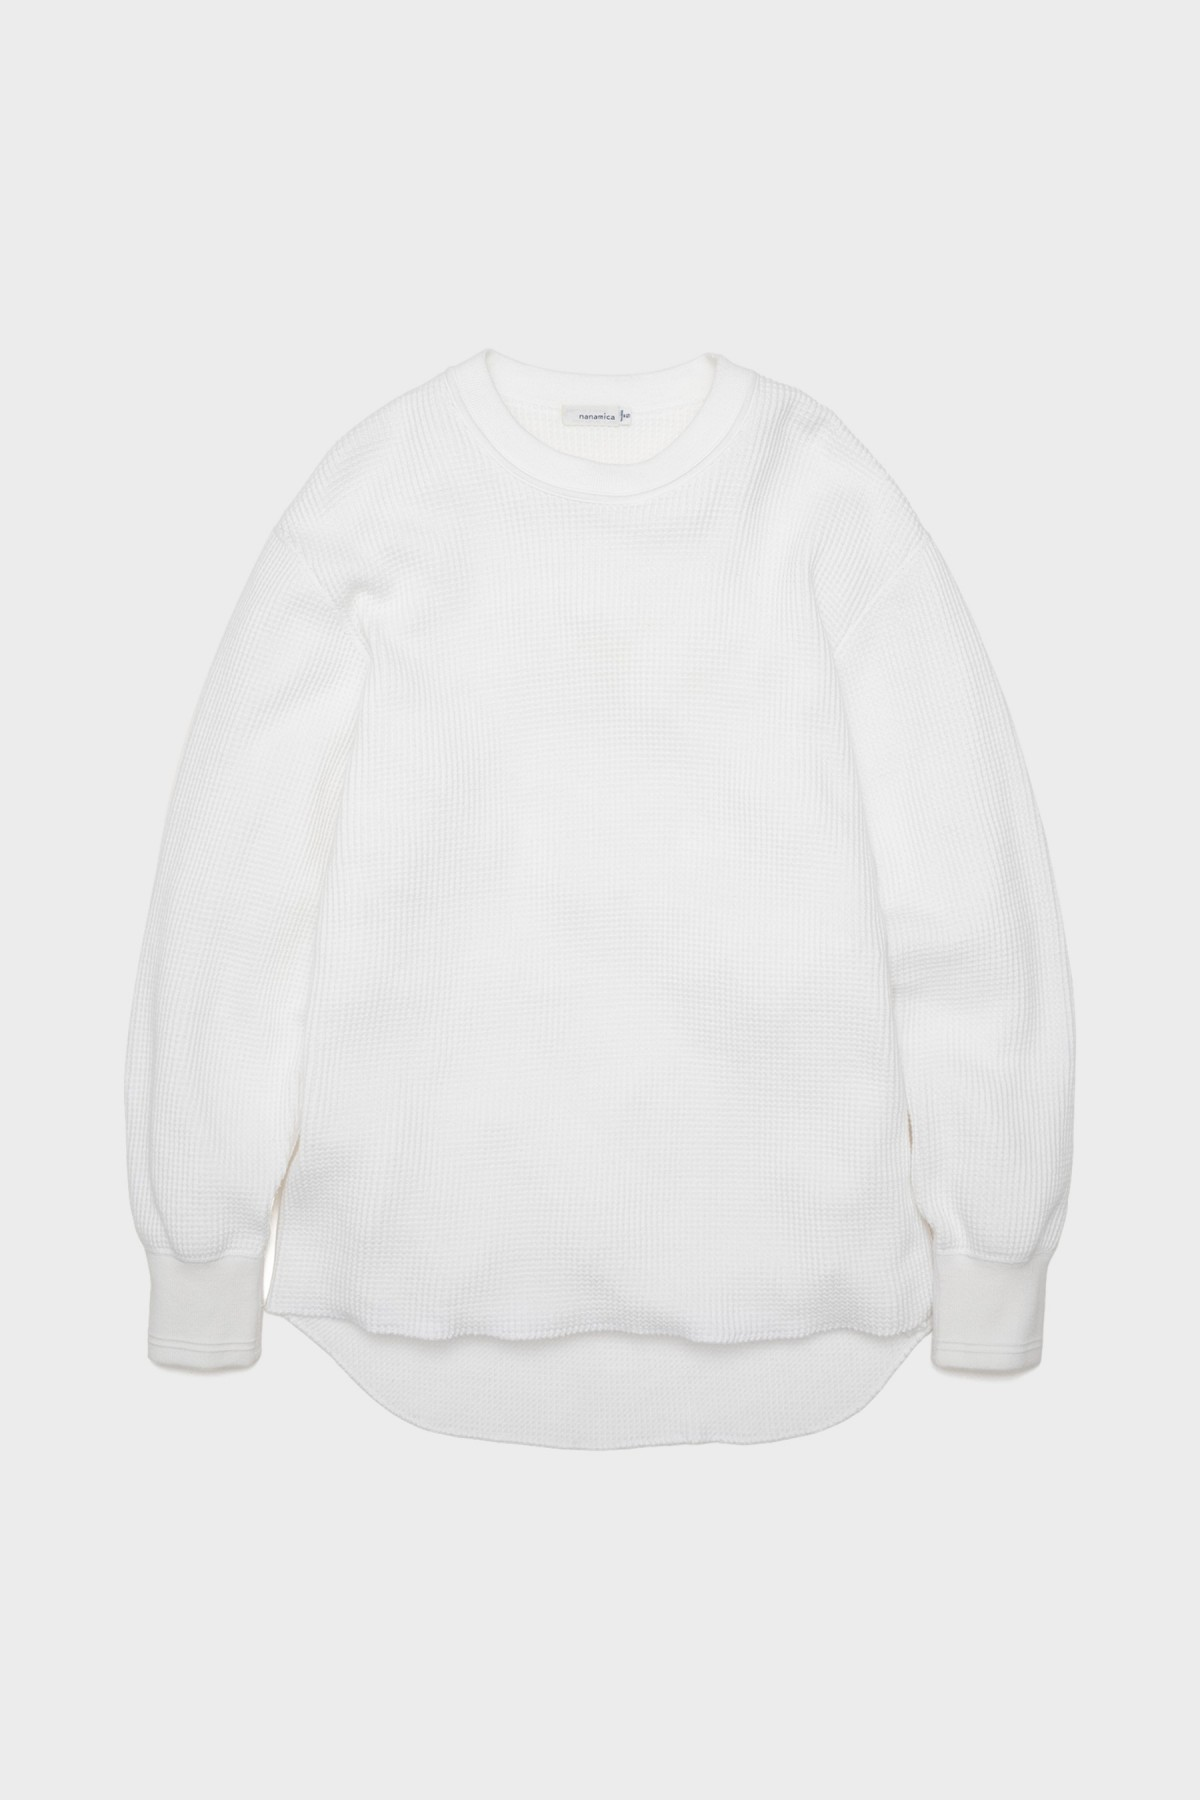 Nanamíca LS Thermal Tee in White